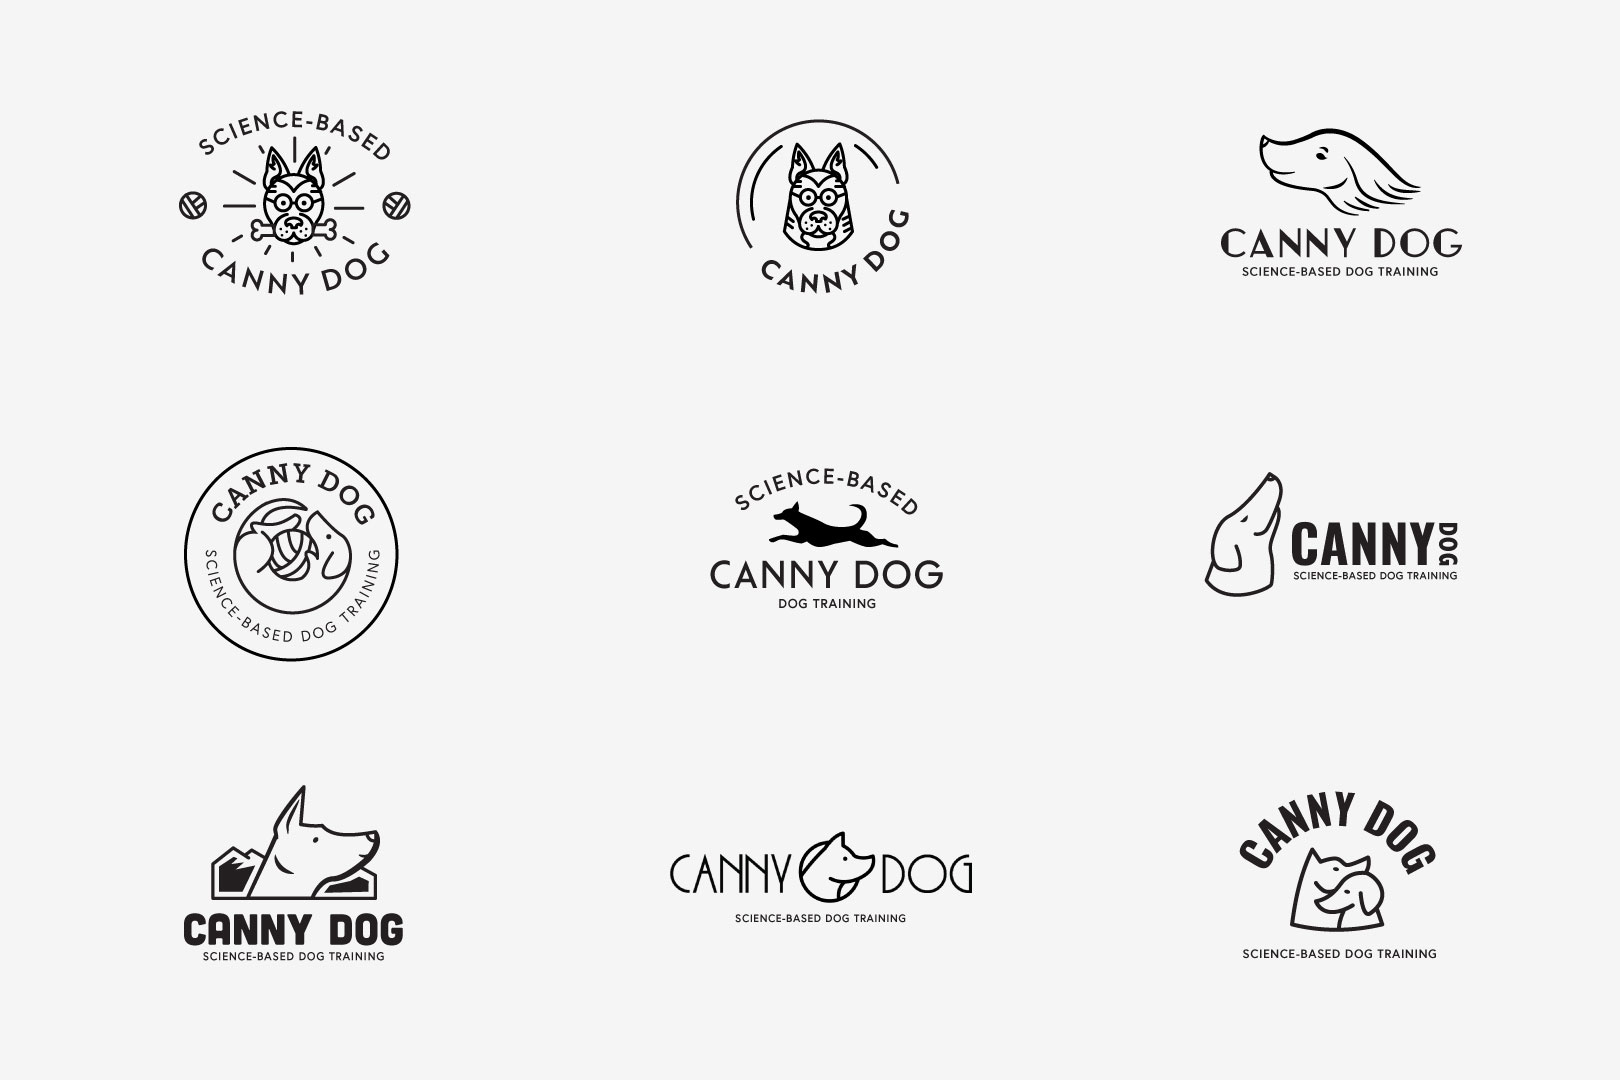 logo collection vee chenting